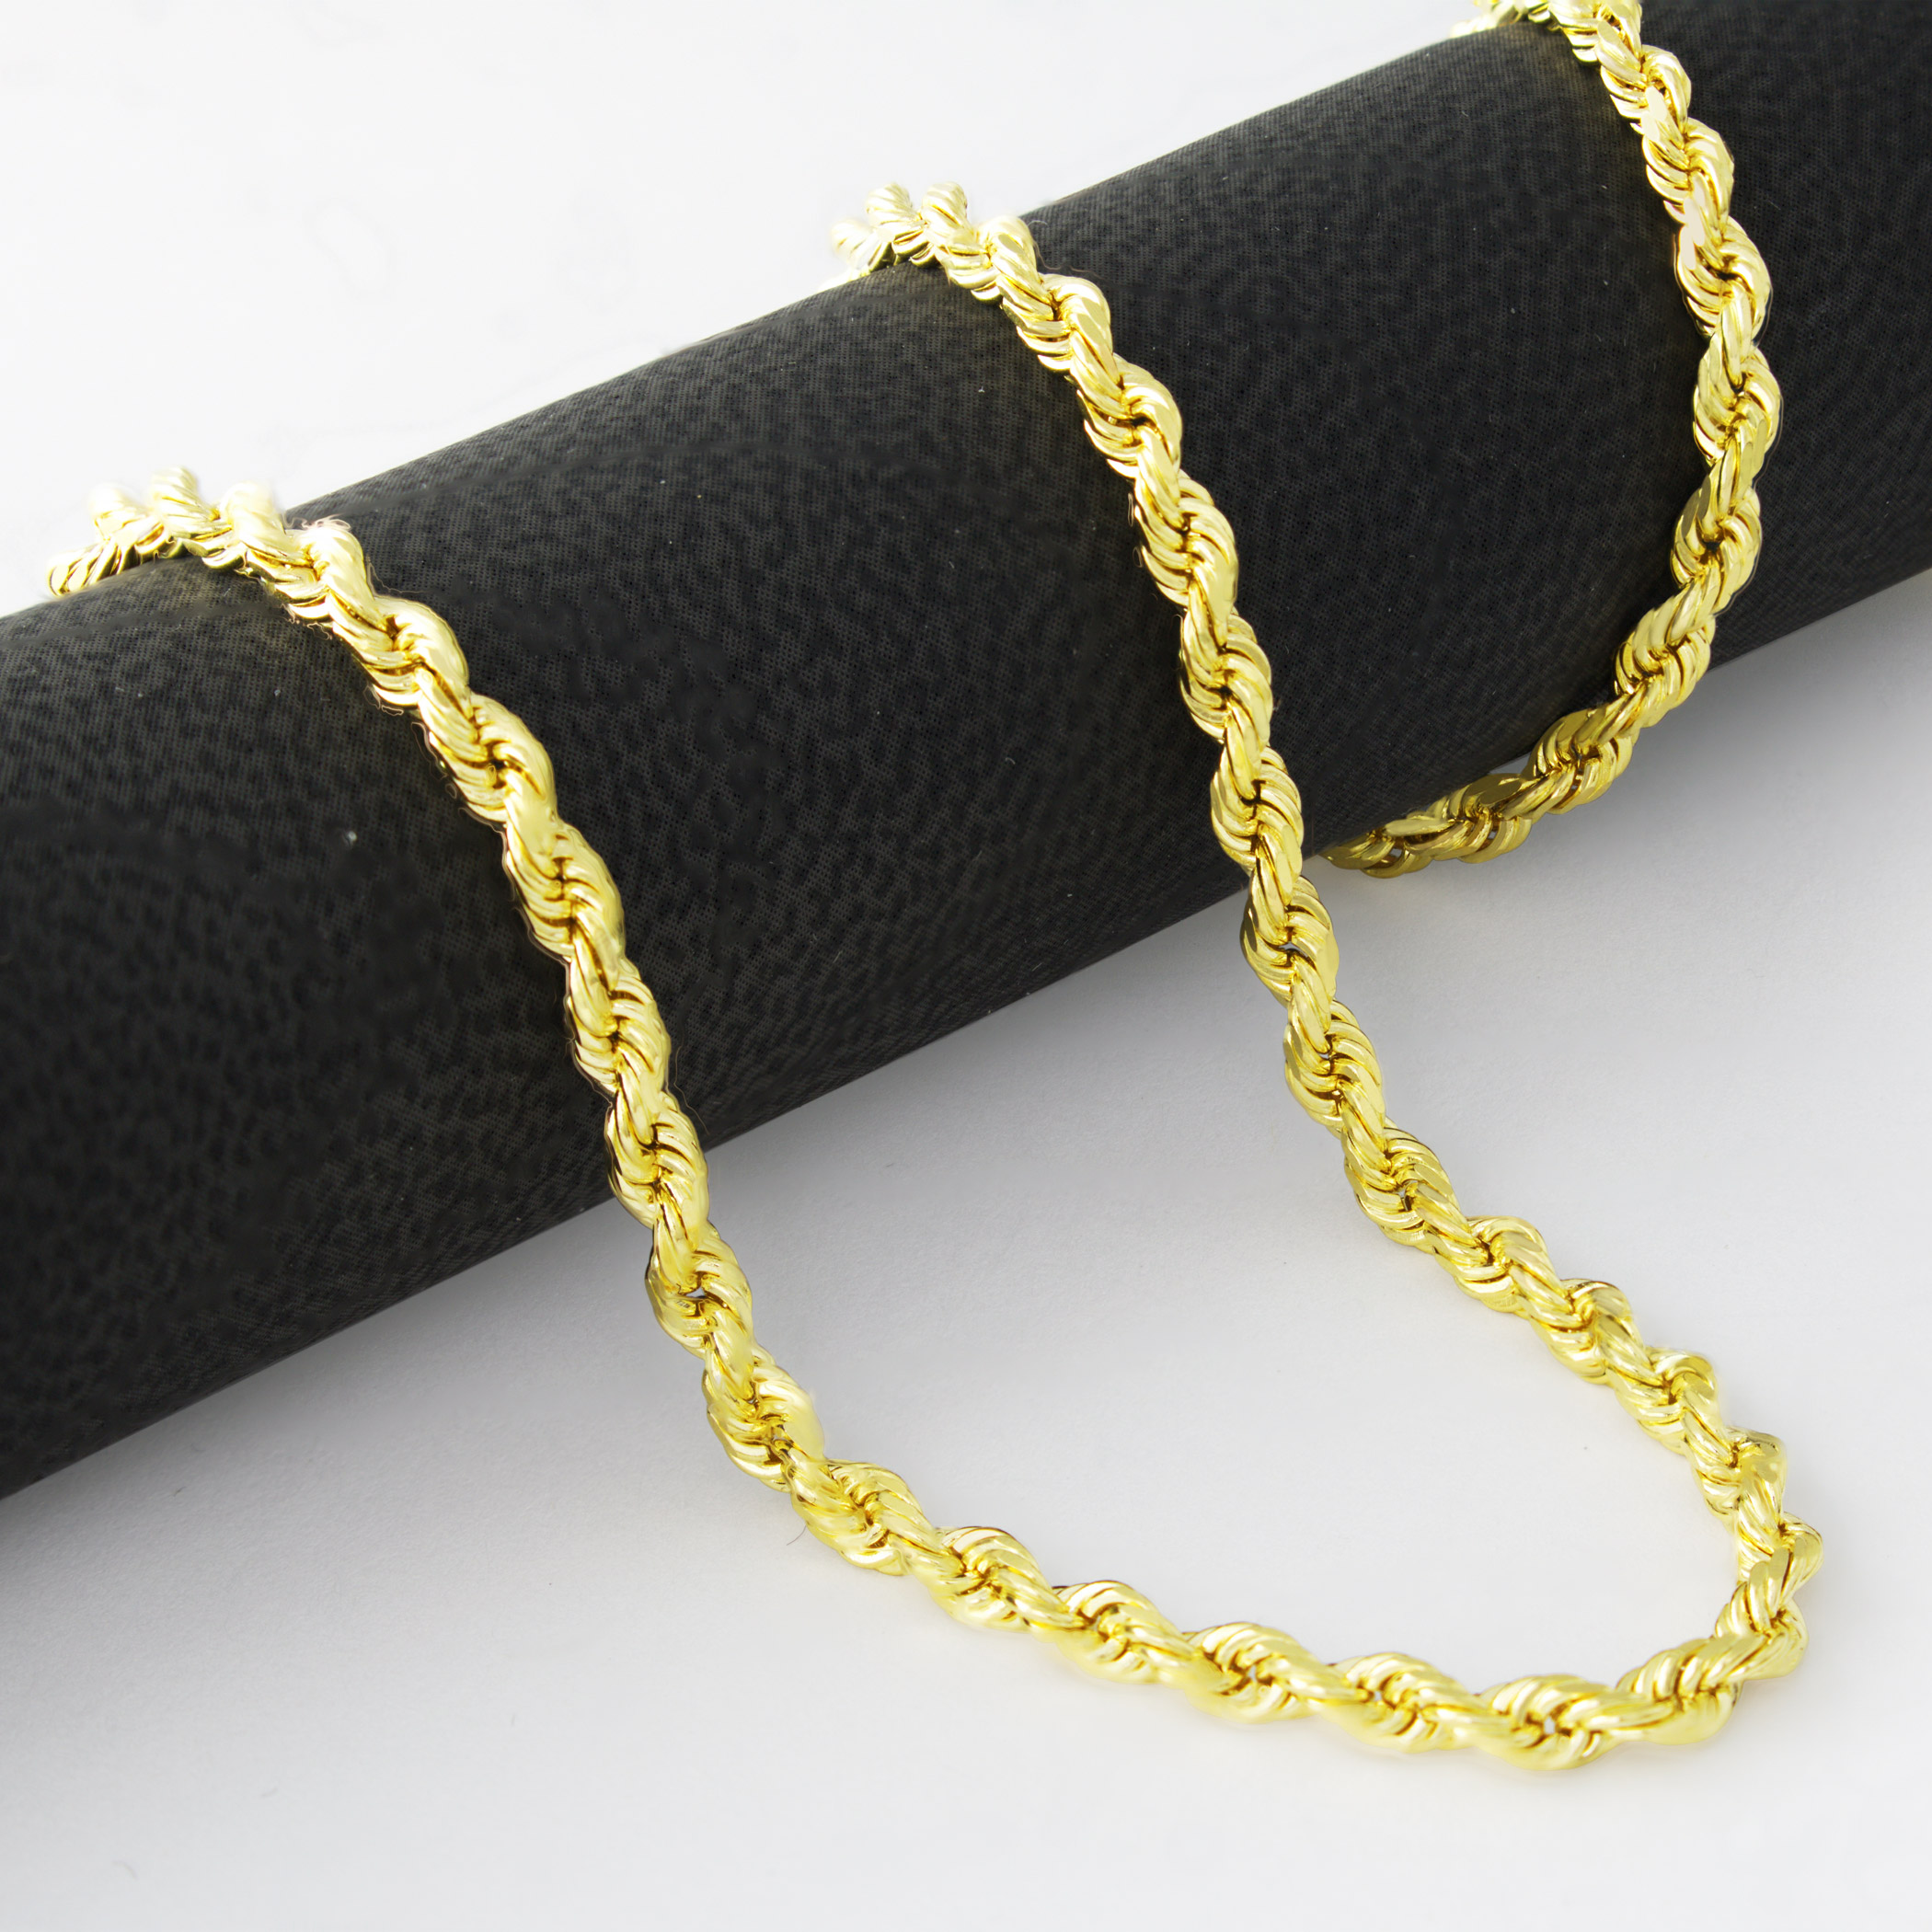 Real-14K-Yellow-Gold-3mm-Diamond-Cut-Rope-Chain-Necklace-Lobster-Clasp-18-034-30-034 thumbnail 77